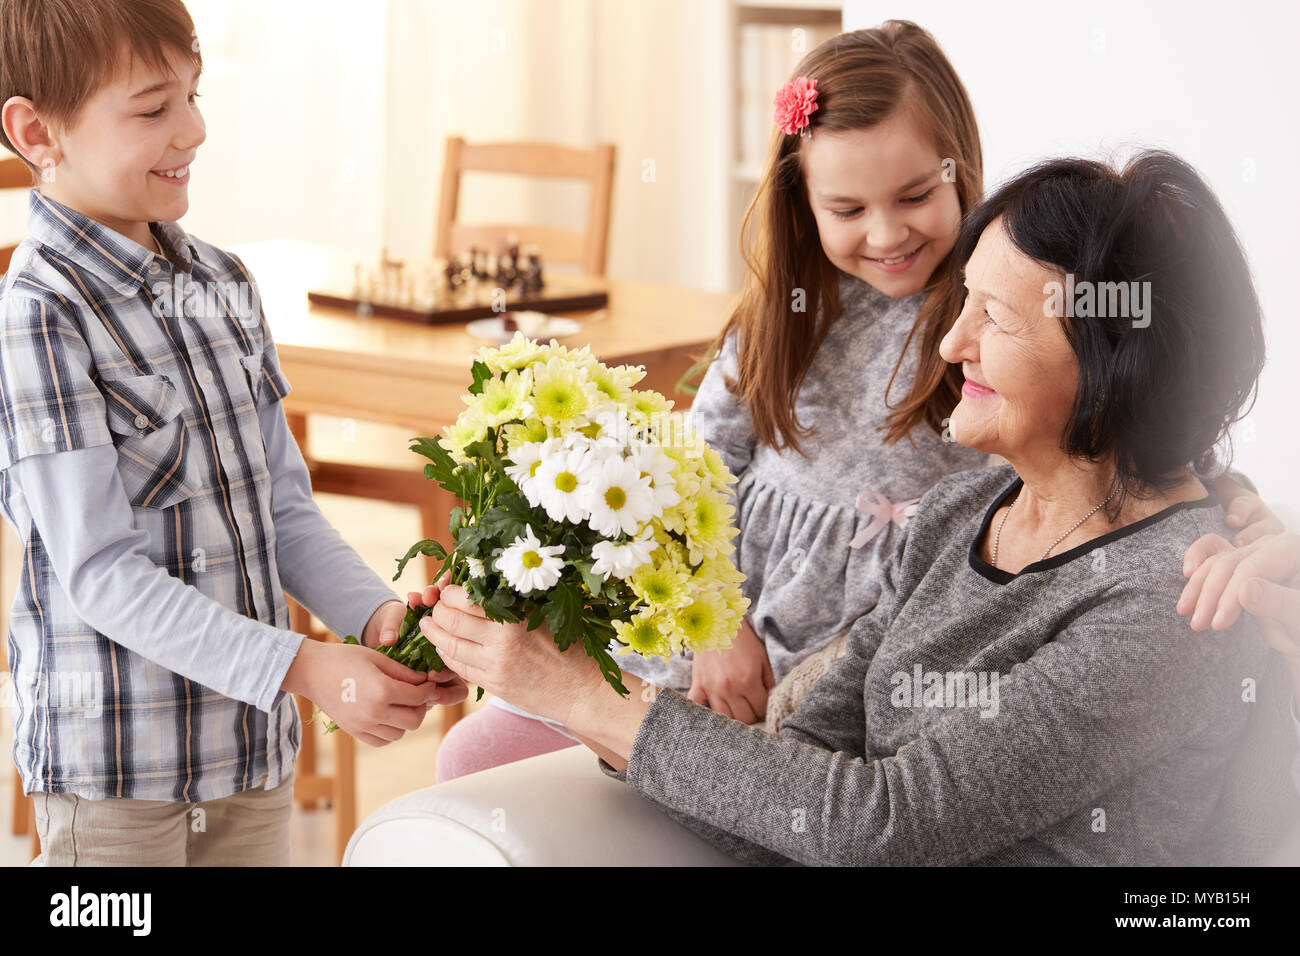 Happy grandchildren giving a bunch of flowers to their grandma sitting on a sofa - Stock Image